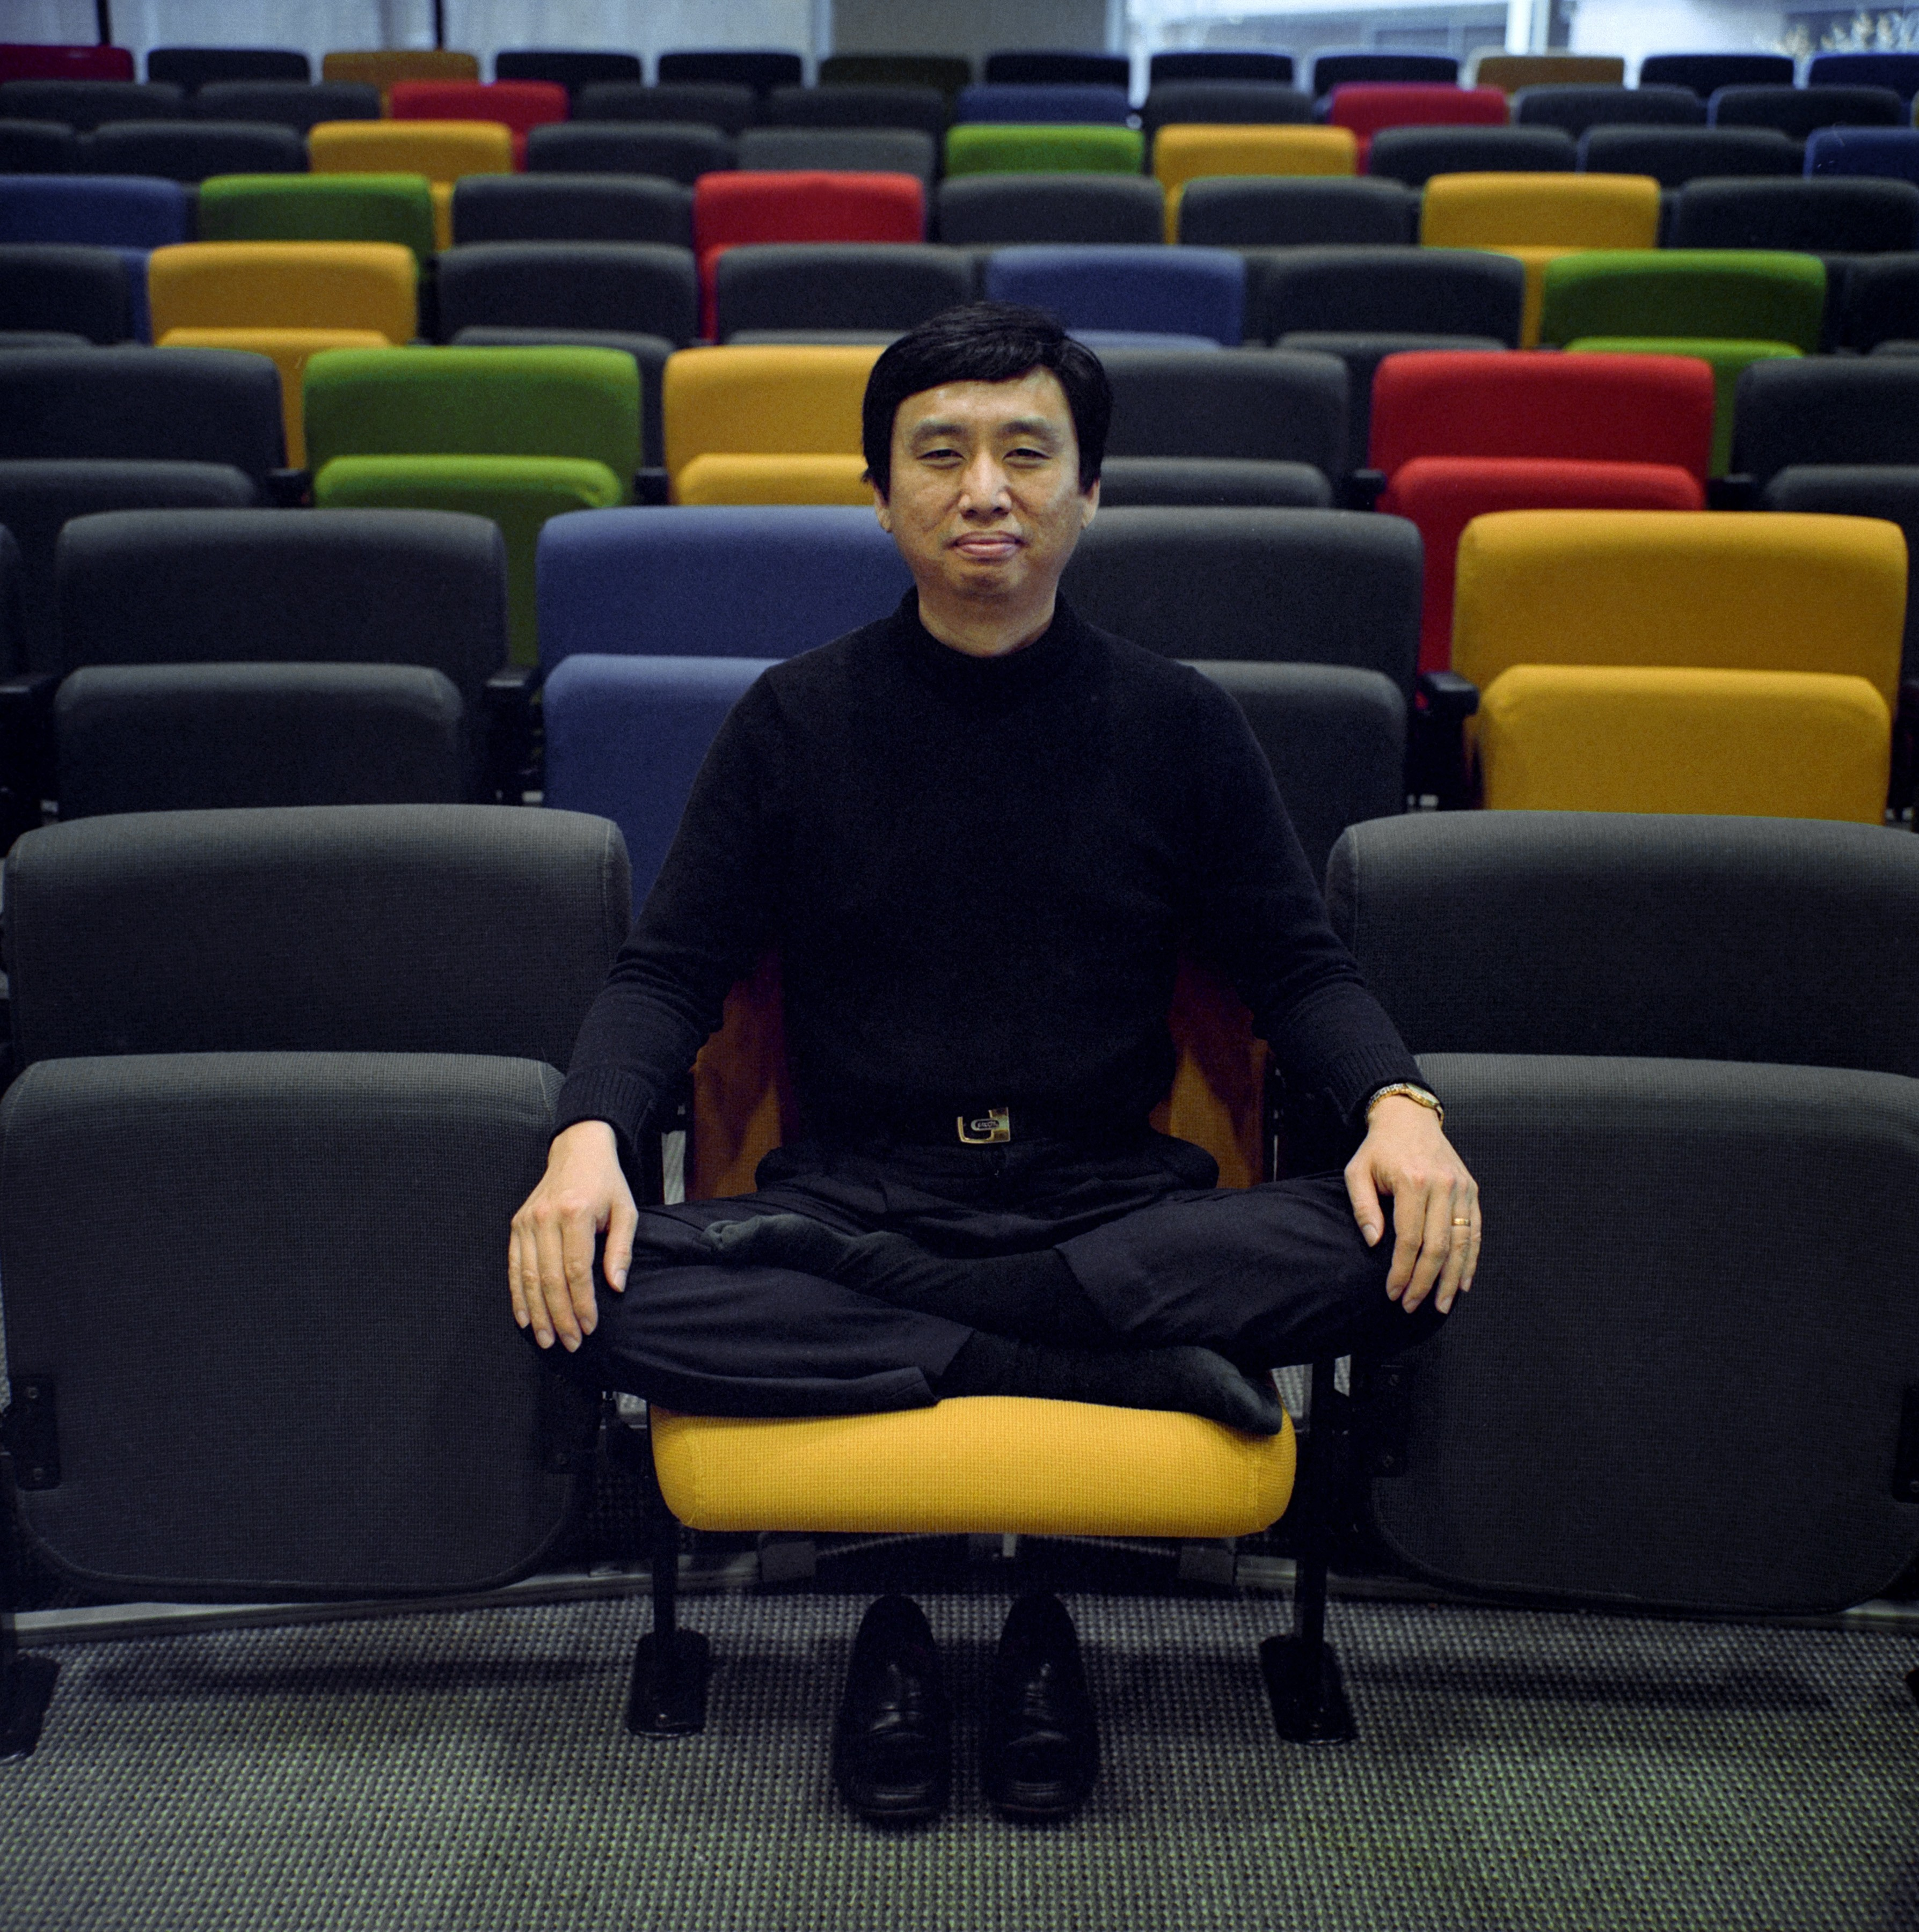 Chade-Meng Tan (Foto: Peter DaSilva/ The New York Times)